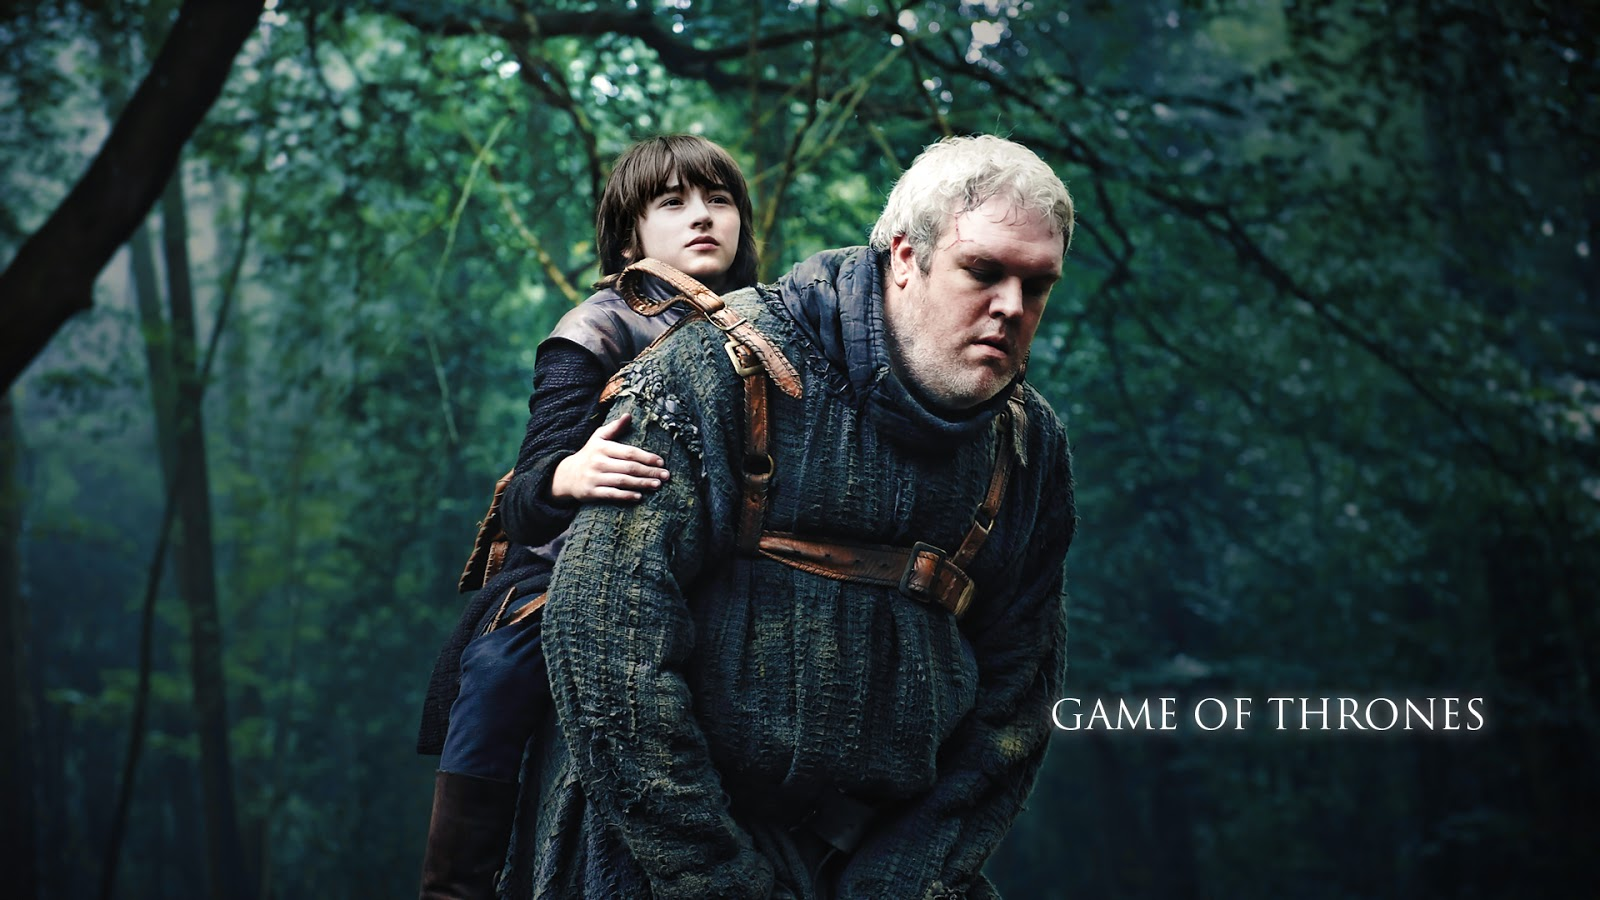 story a day game of thrones hodor dilemma casual loop temporal paradox. Black Bedroom Furniture Sets. Home Design Ideas